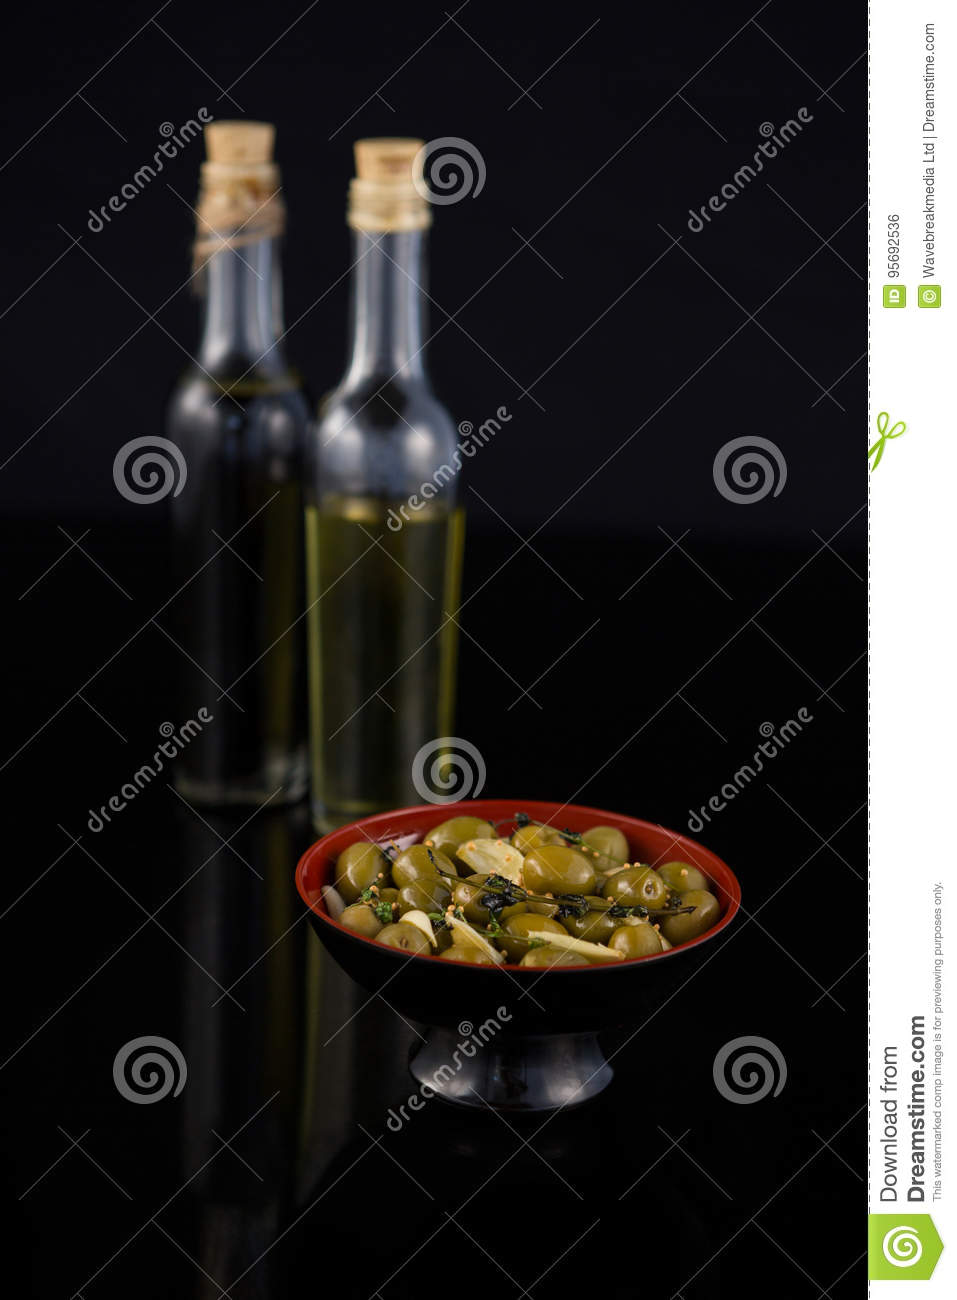 21ad19220f89 Close-up of marinated olives with olive oil and balsamic vinegar bottle